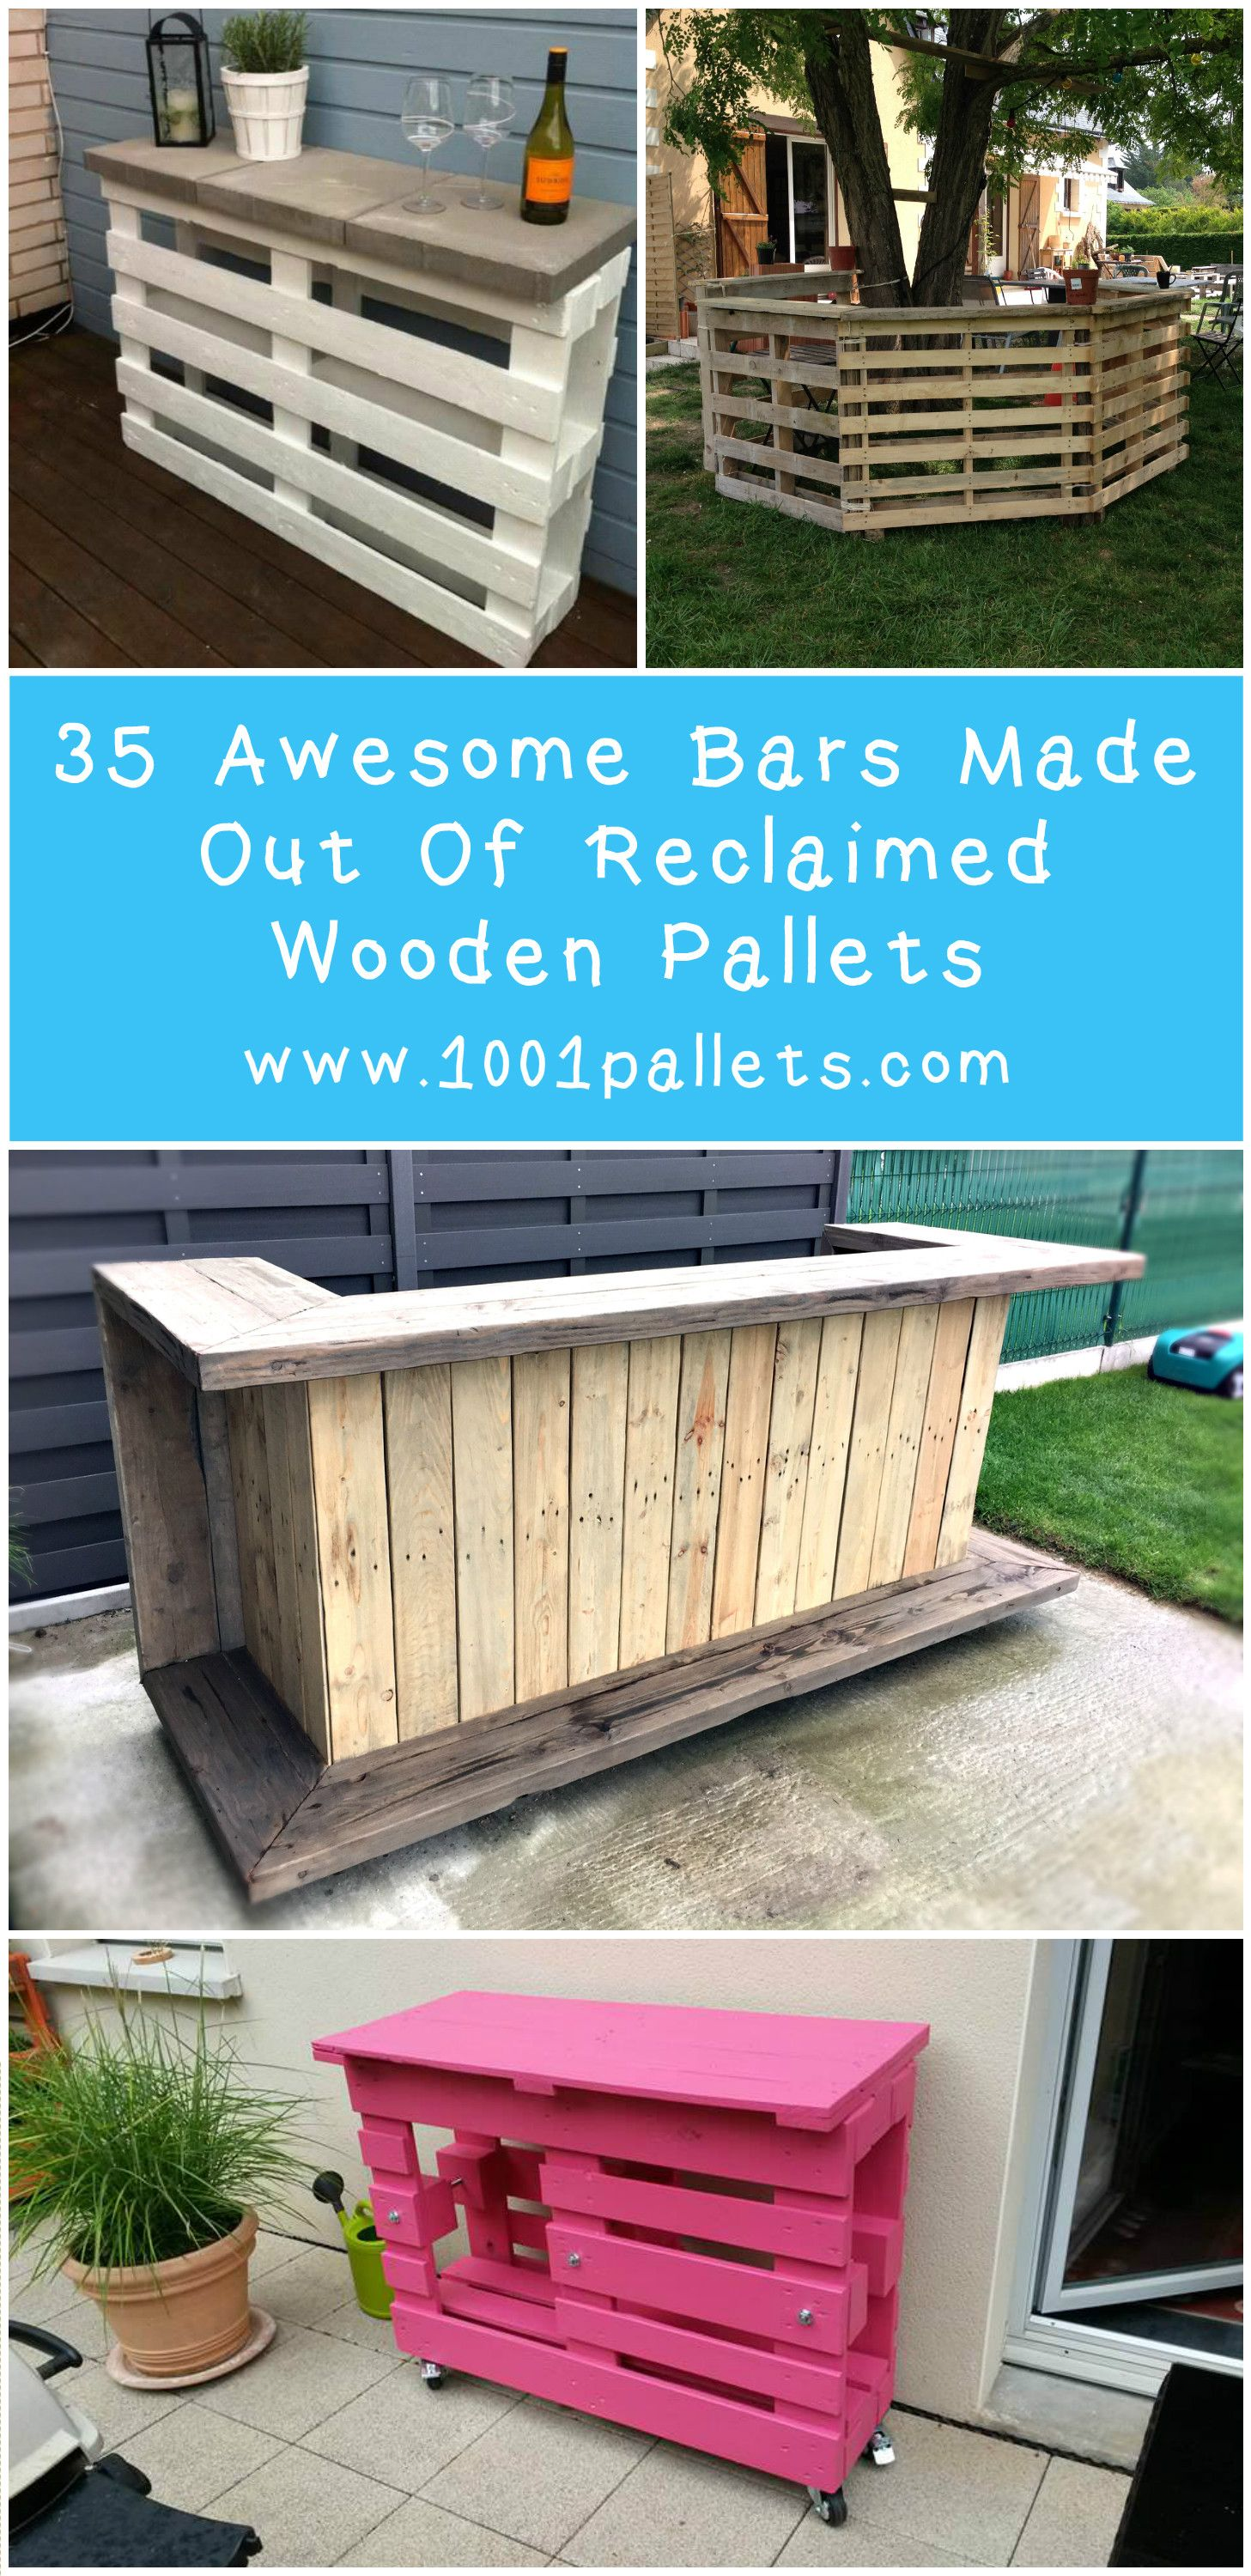 54 Amazing Bars Made From Pallet Wood For Your Inspiration Wood